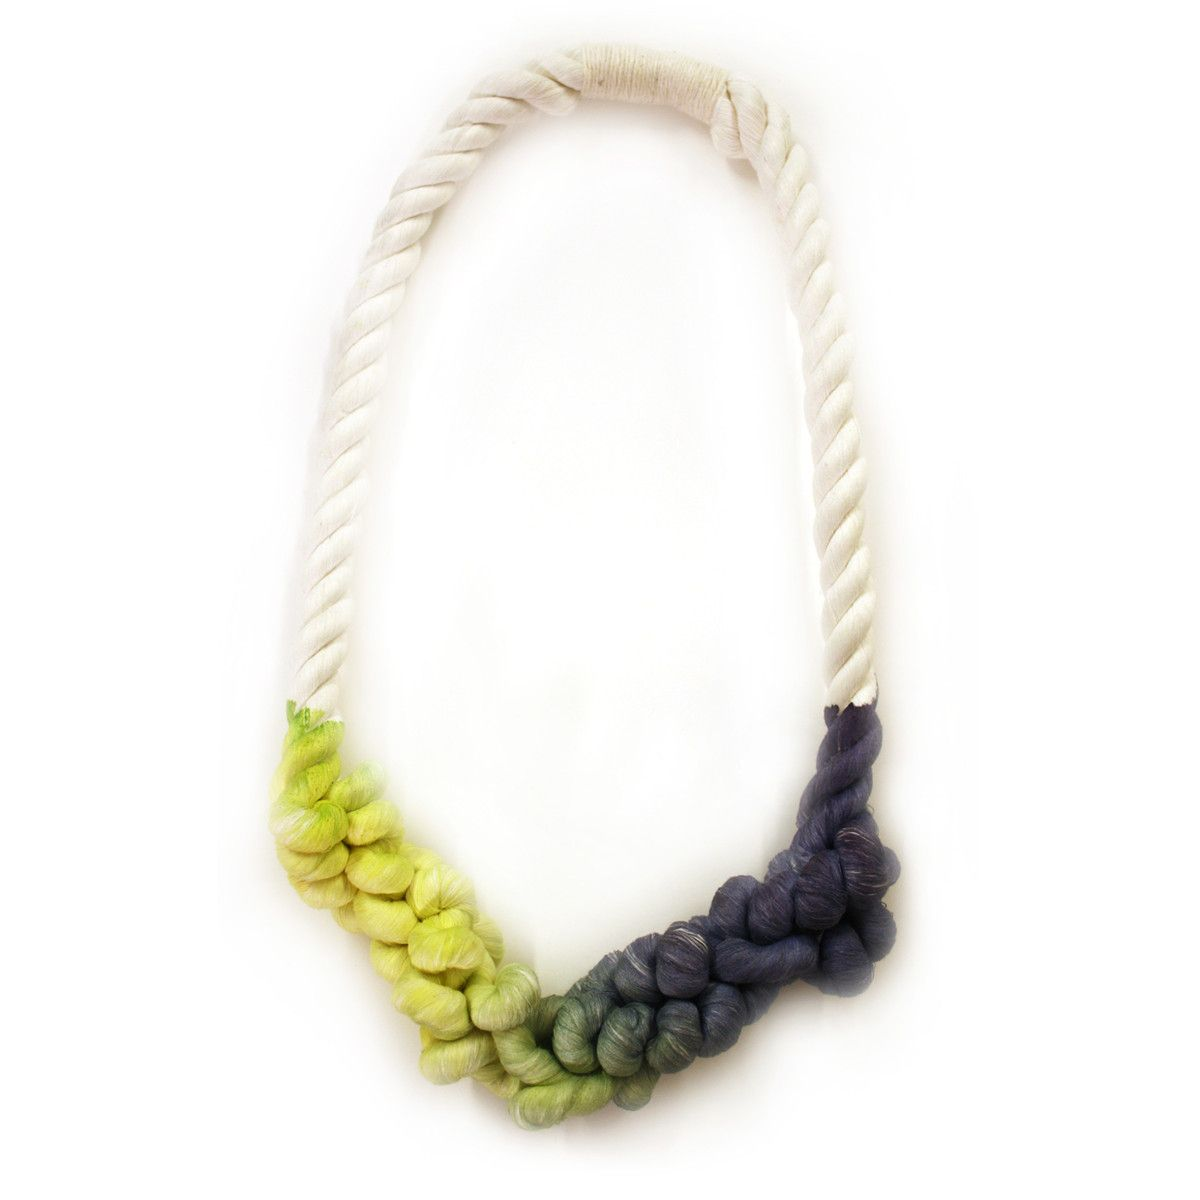 Jewelry that robes you in.... Dipped Rope Necklace Lime Navy. Innovative and fashion forward!